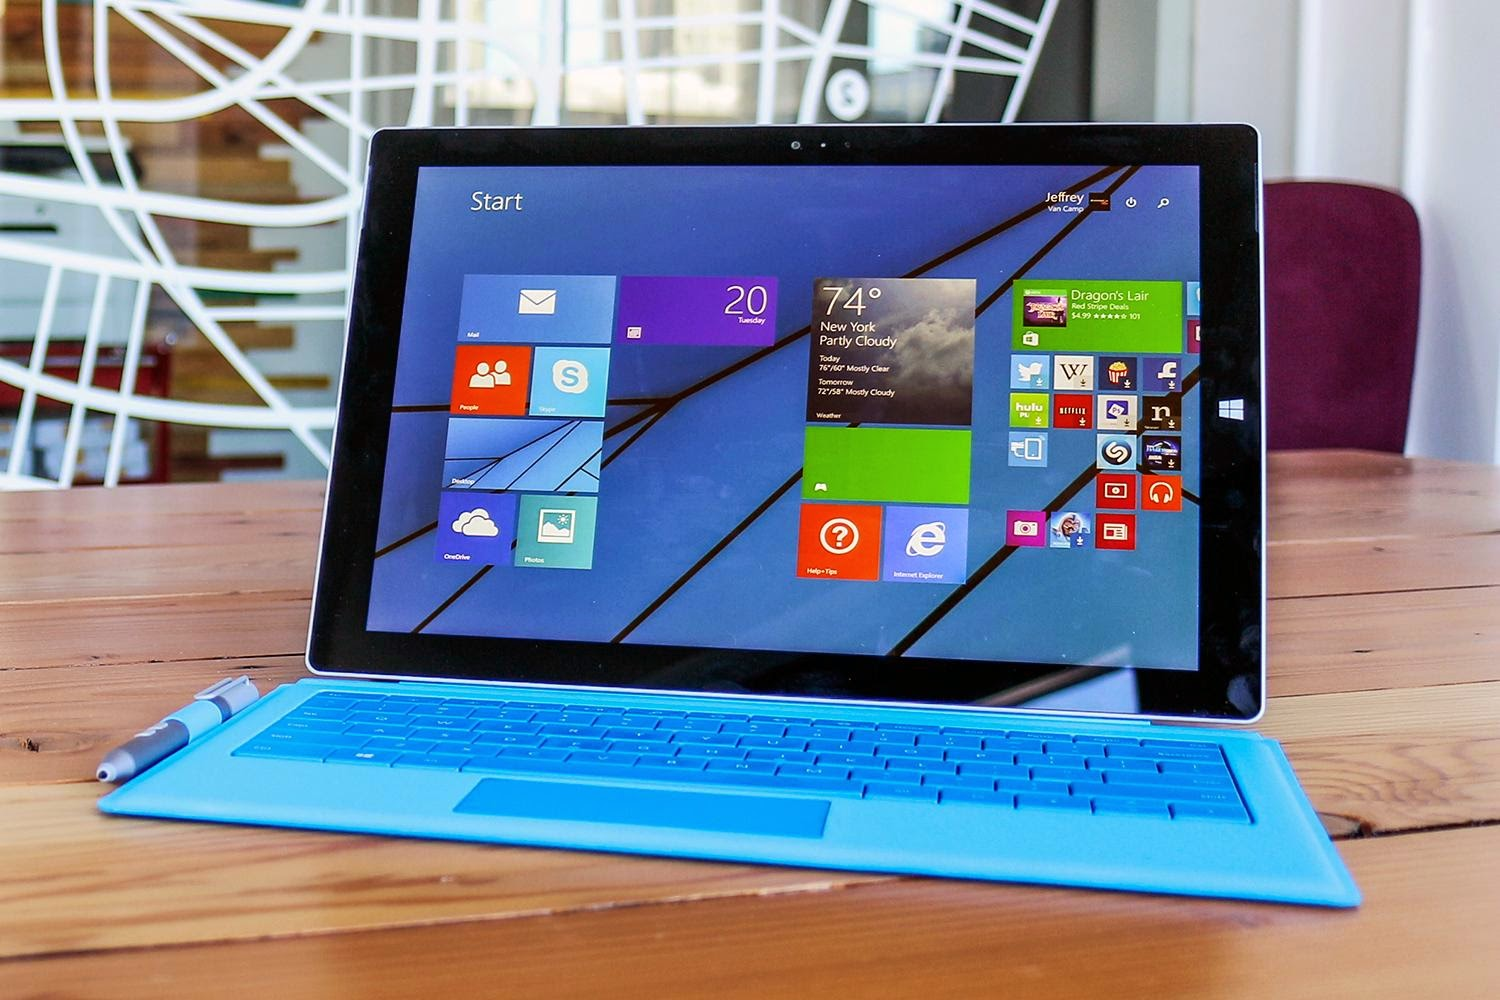 Microsoft Surface Pro 3 review - Specification and Pricing